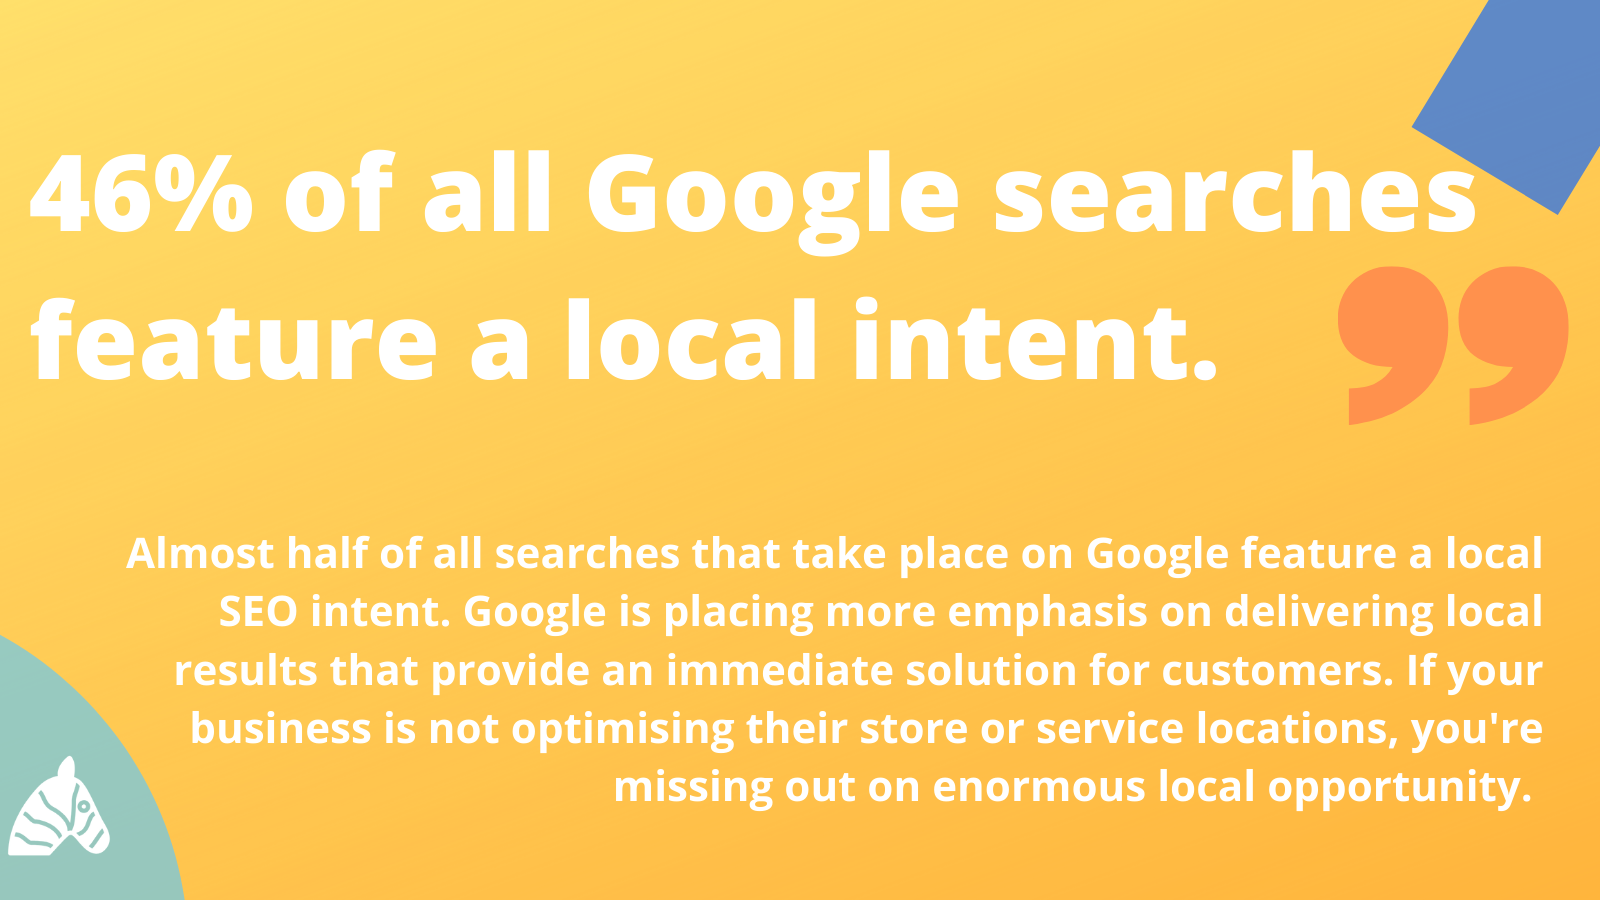 46% of all Google searches feature a local intent statistic